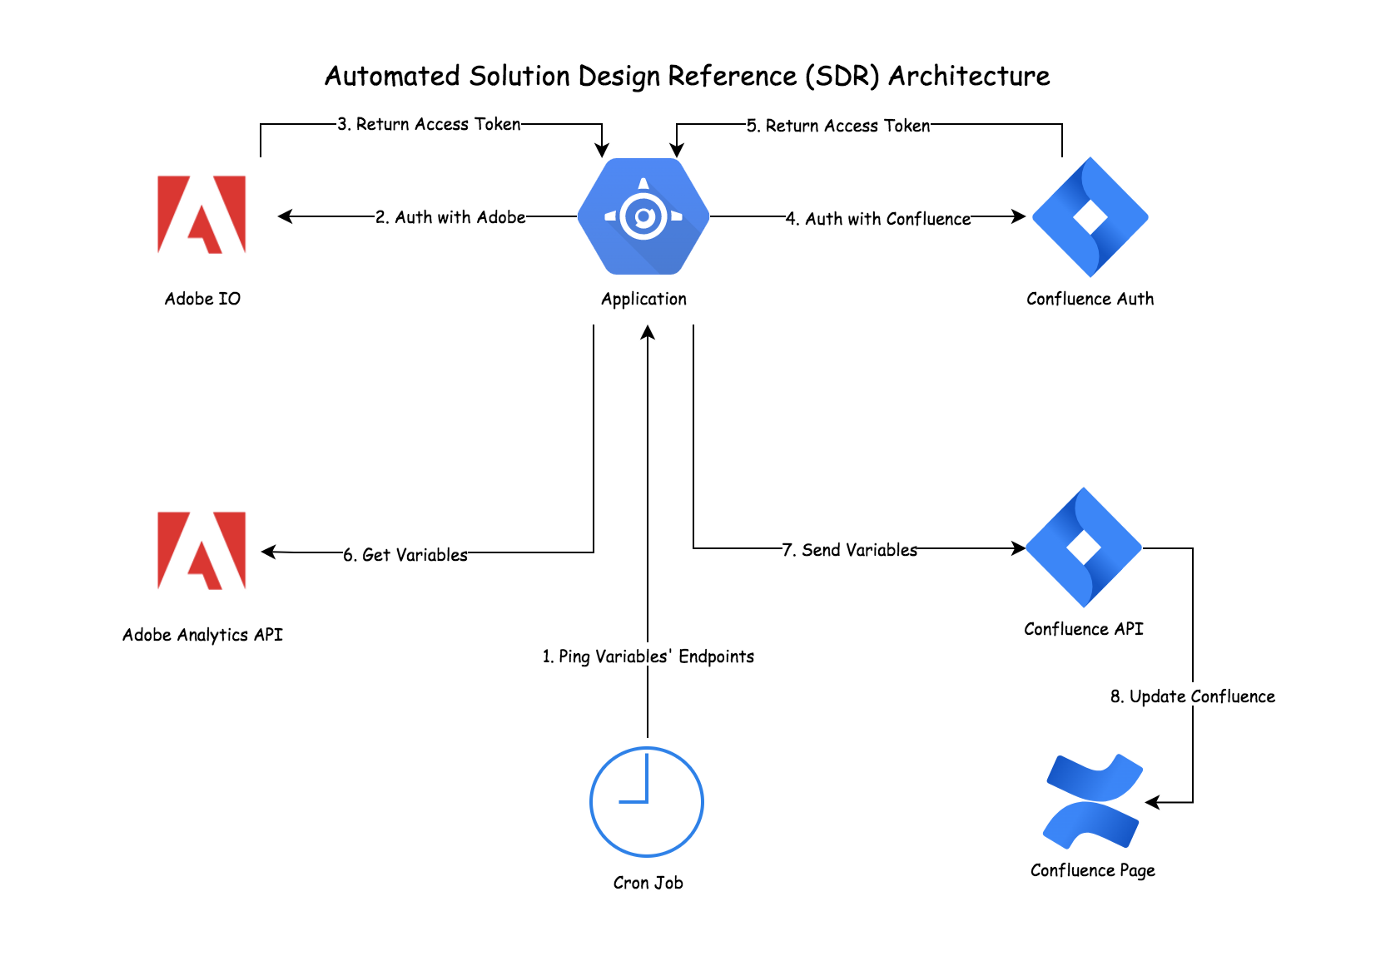 High-level Architecture for the Automated Solution Design Reference (SDR)